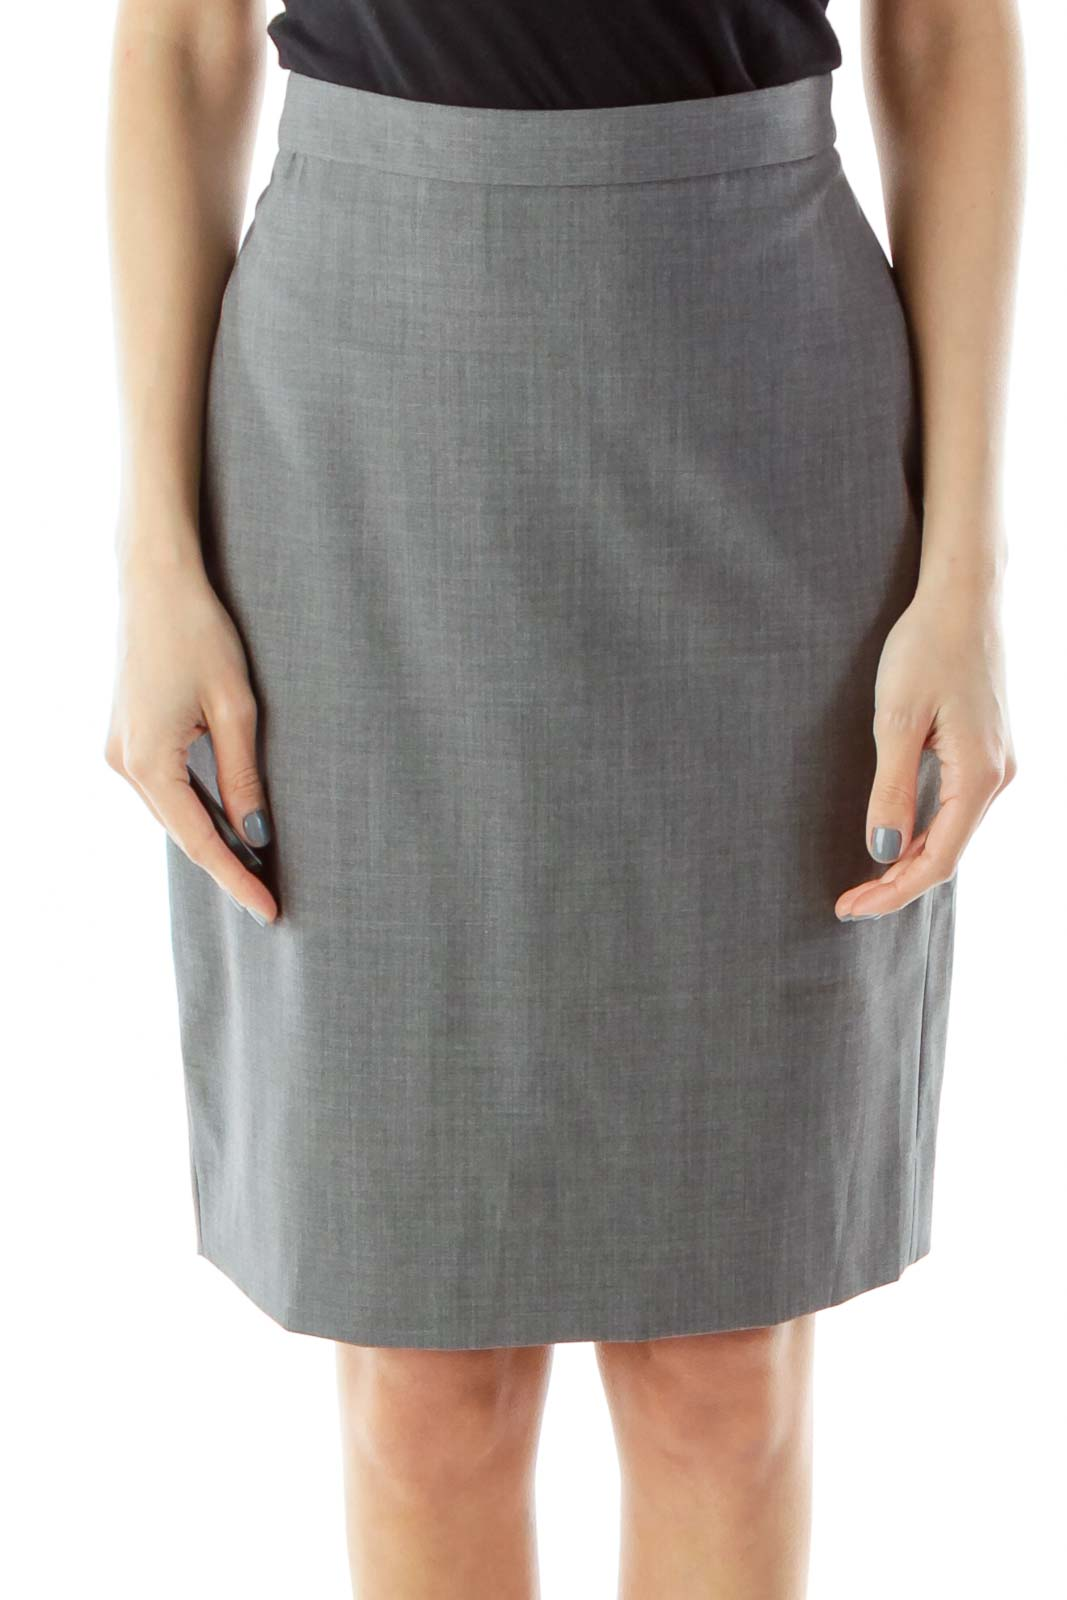 f751a3f3a Shop Gray Pencil Skirt clothing and handbags at SilkRoll. Trade with us!